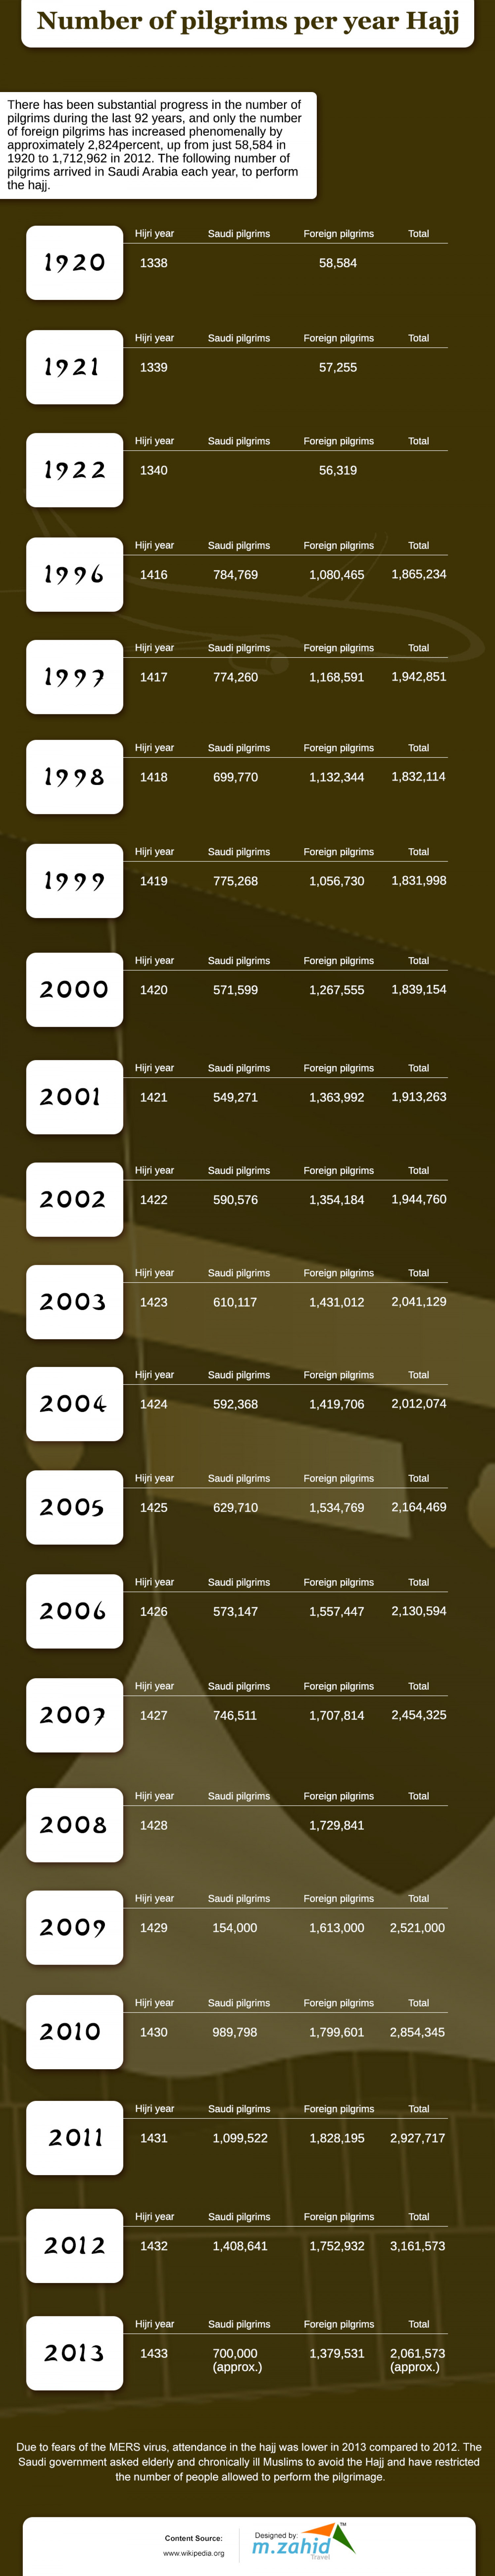 Number of Pilgrims Per Year Hajj Infographic